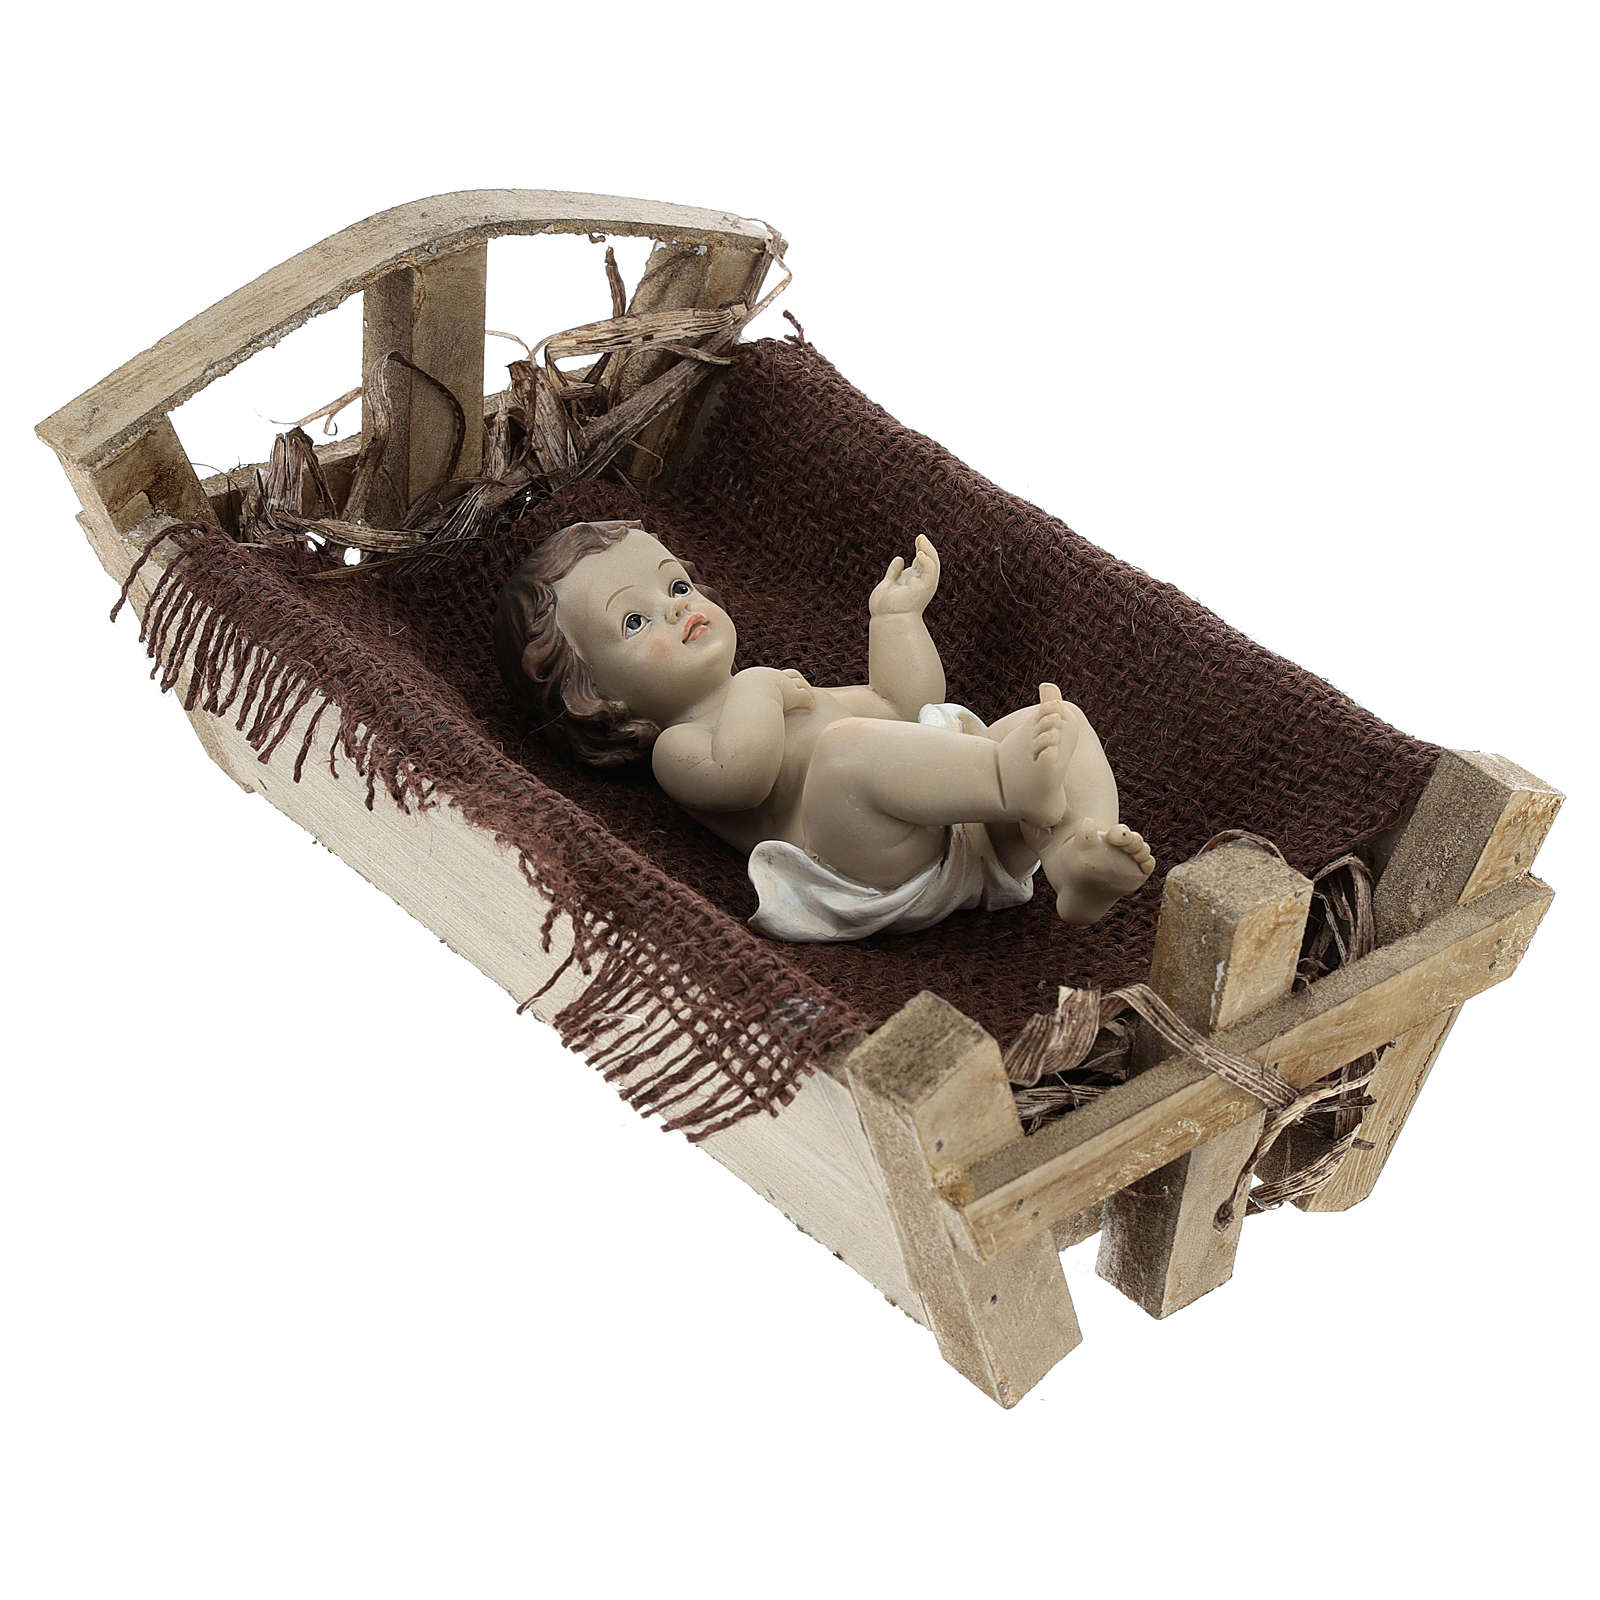 Baby Jesus with cradle 24.5 cm (real height) 3